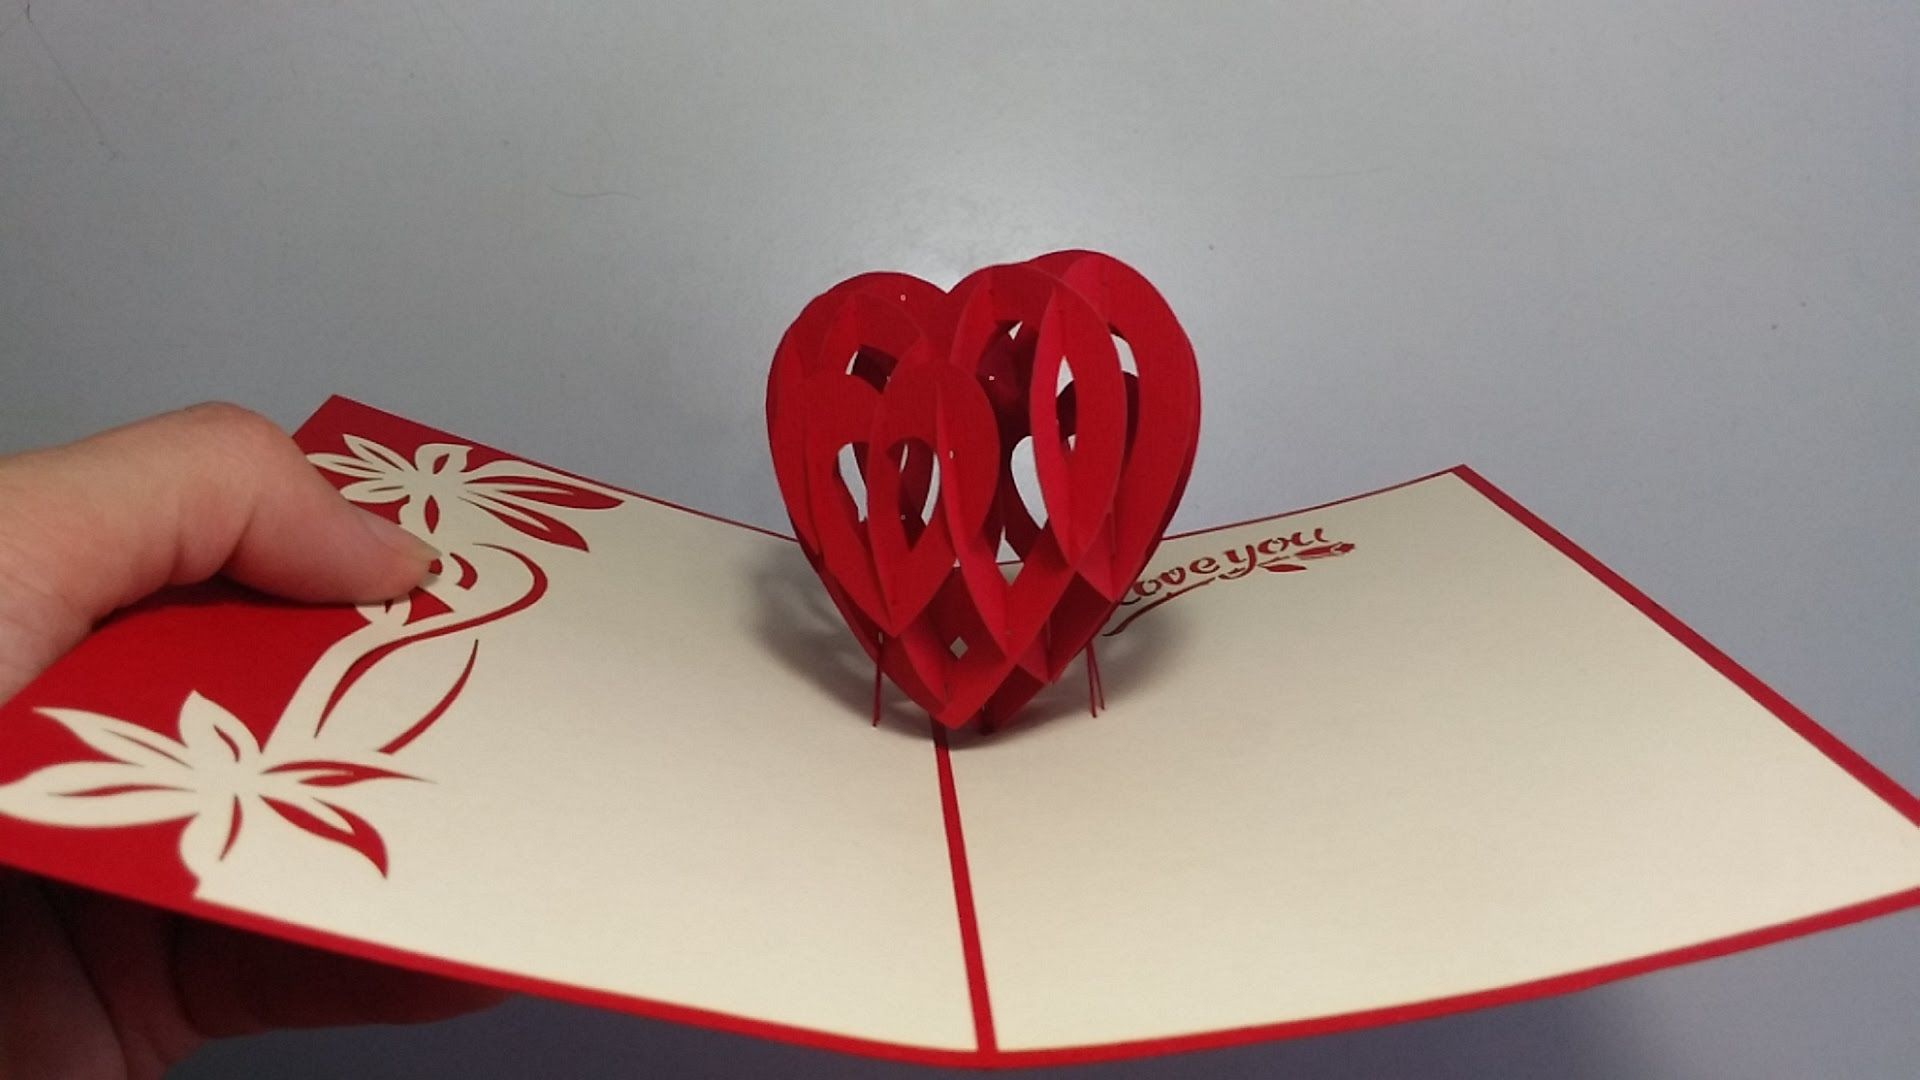 How To Make 3d Heart Valentine Day Pop Up Card Aoc Craft Pop Up Valentine Cards Paper Crafts Cards Pop Up Card Templates